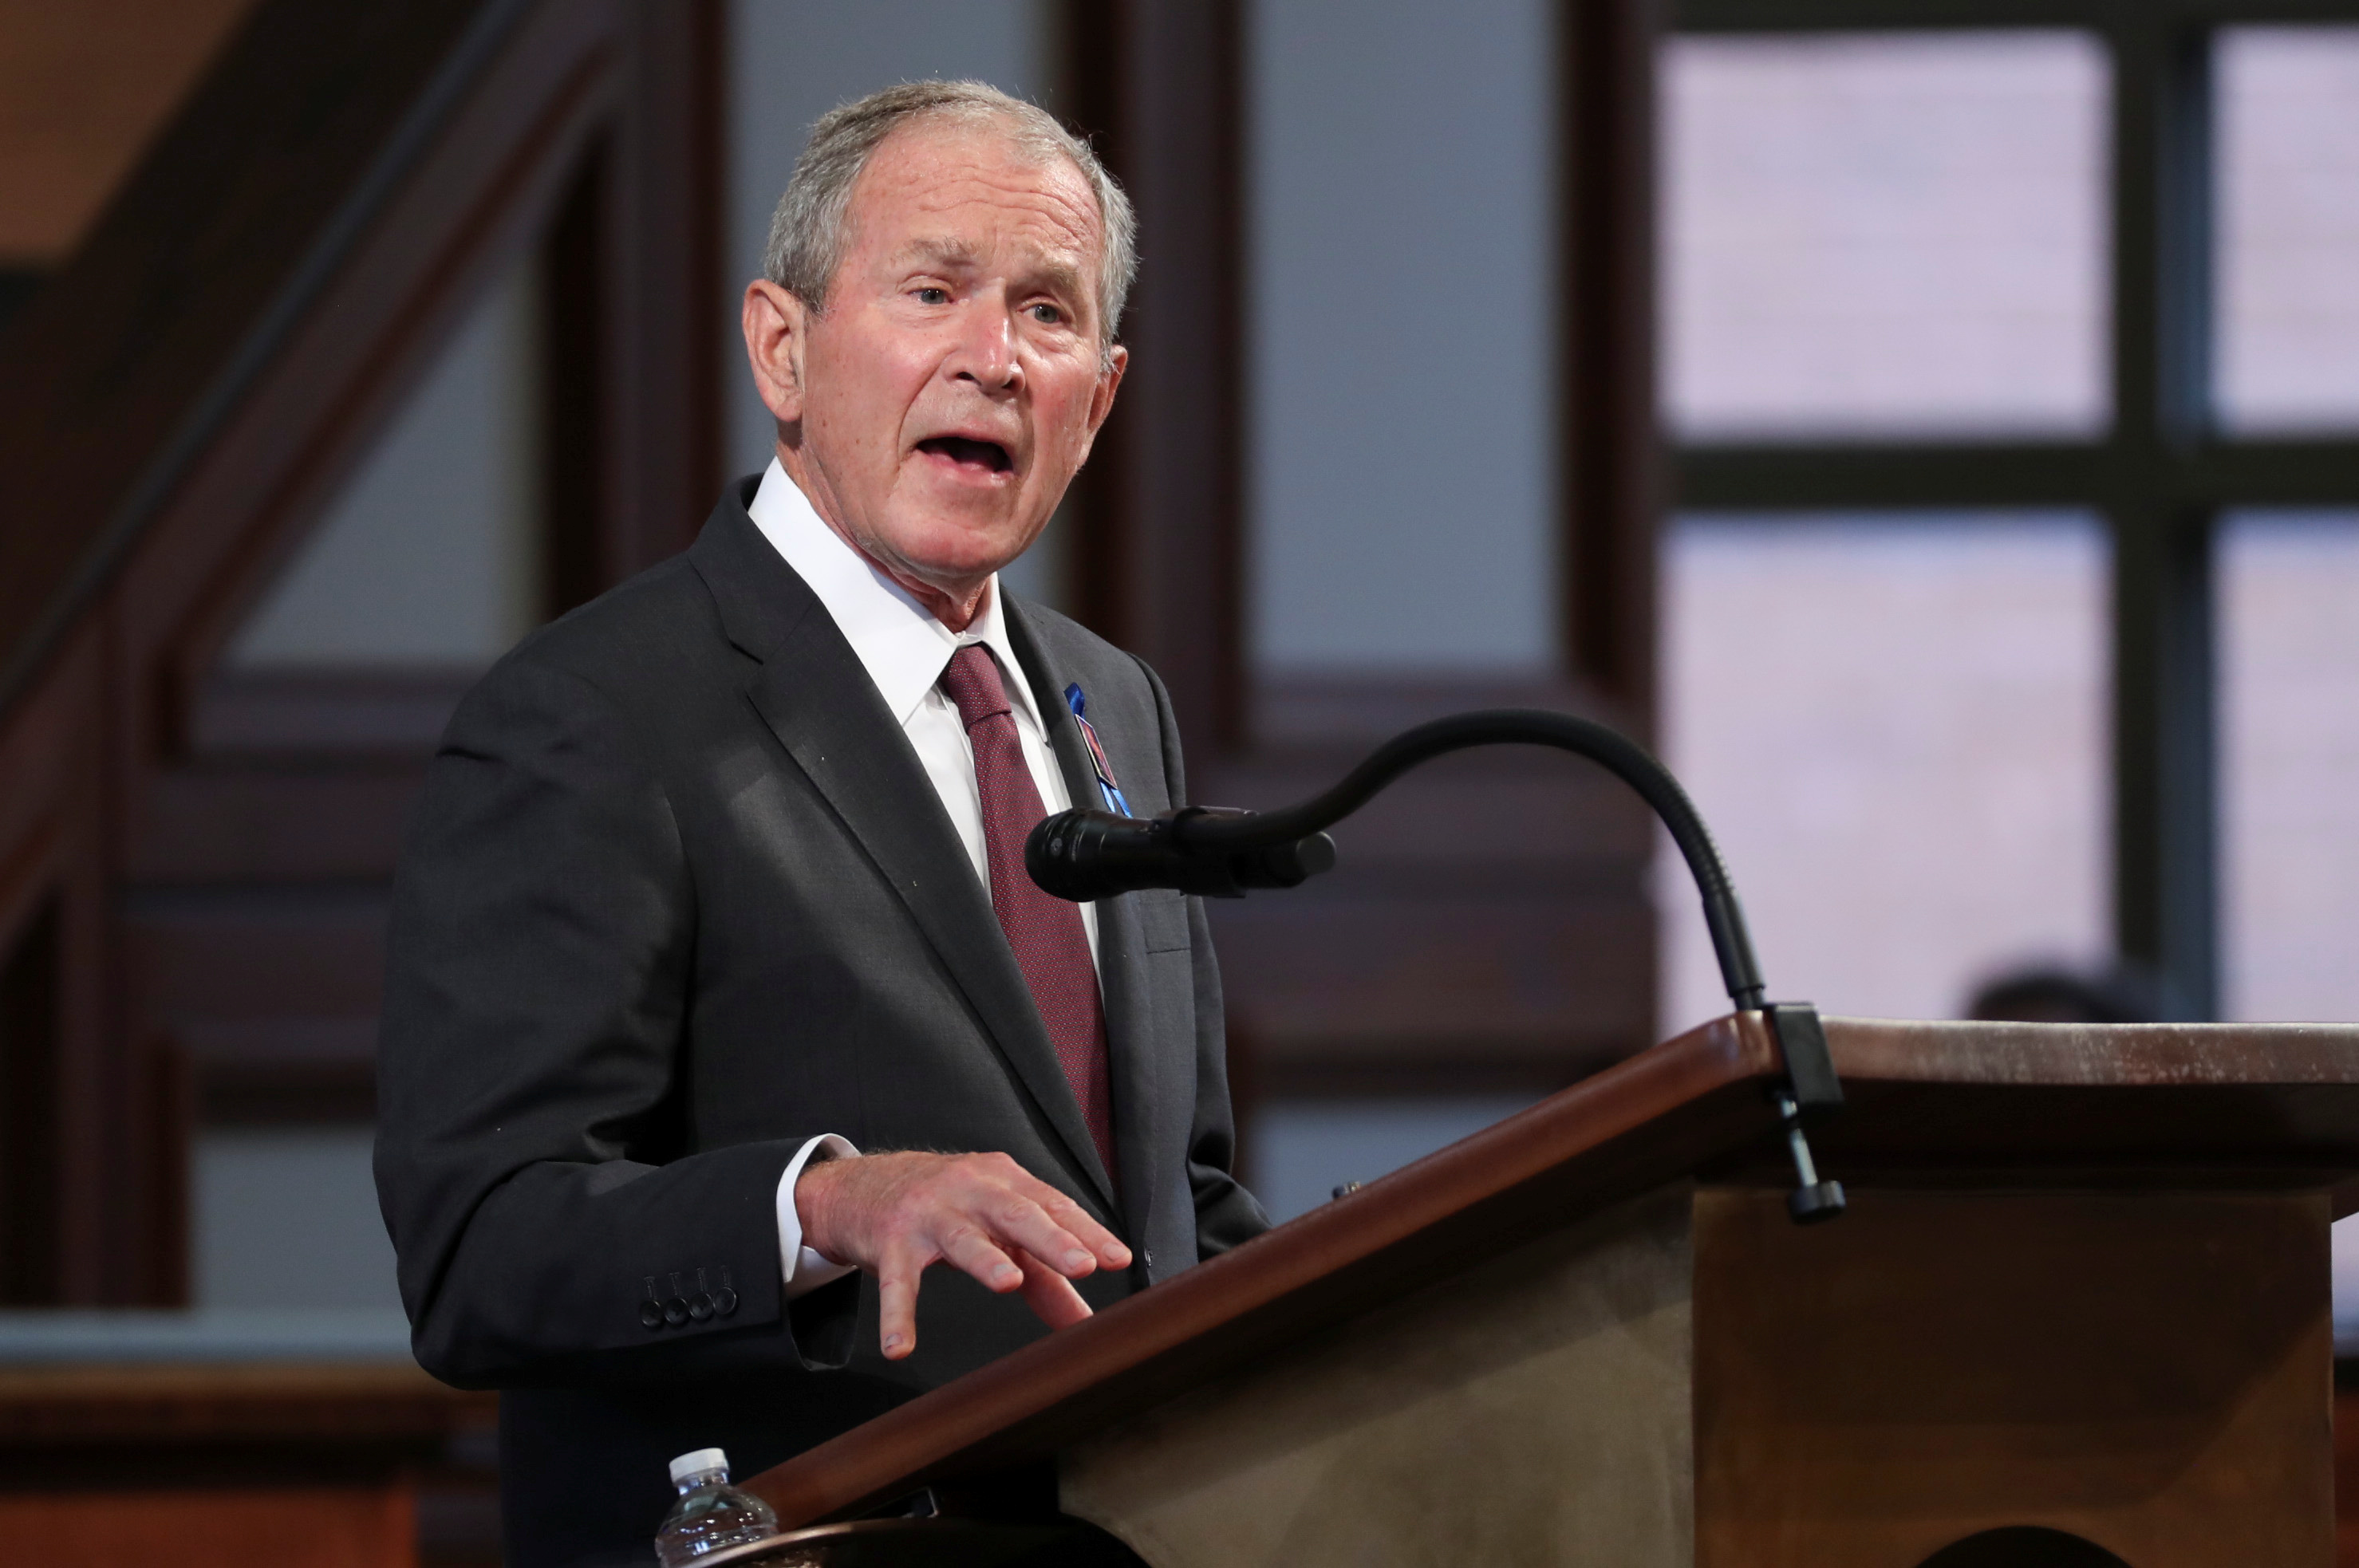 Former President George W. Bush Expresses 'Deep Sadness' Over Taliban's Takeover of Afghanistan